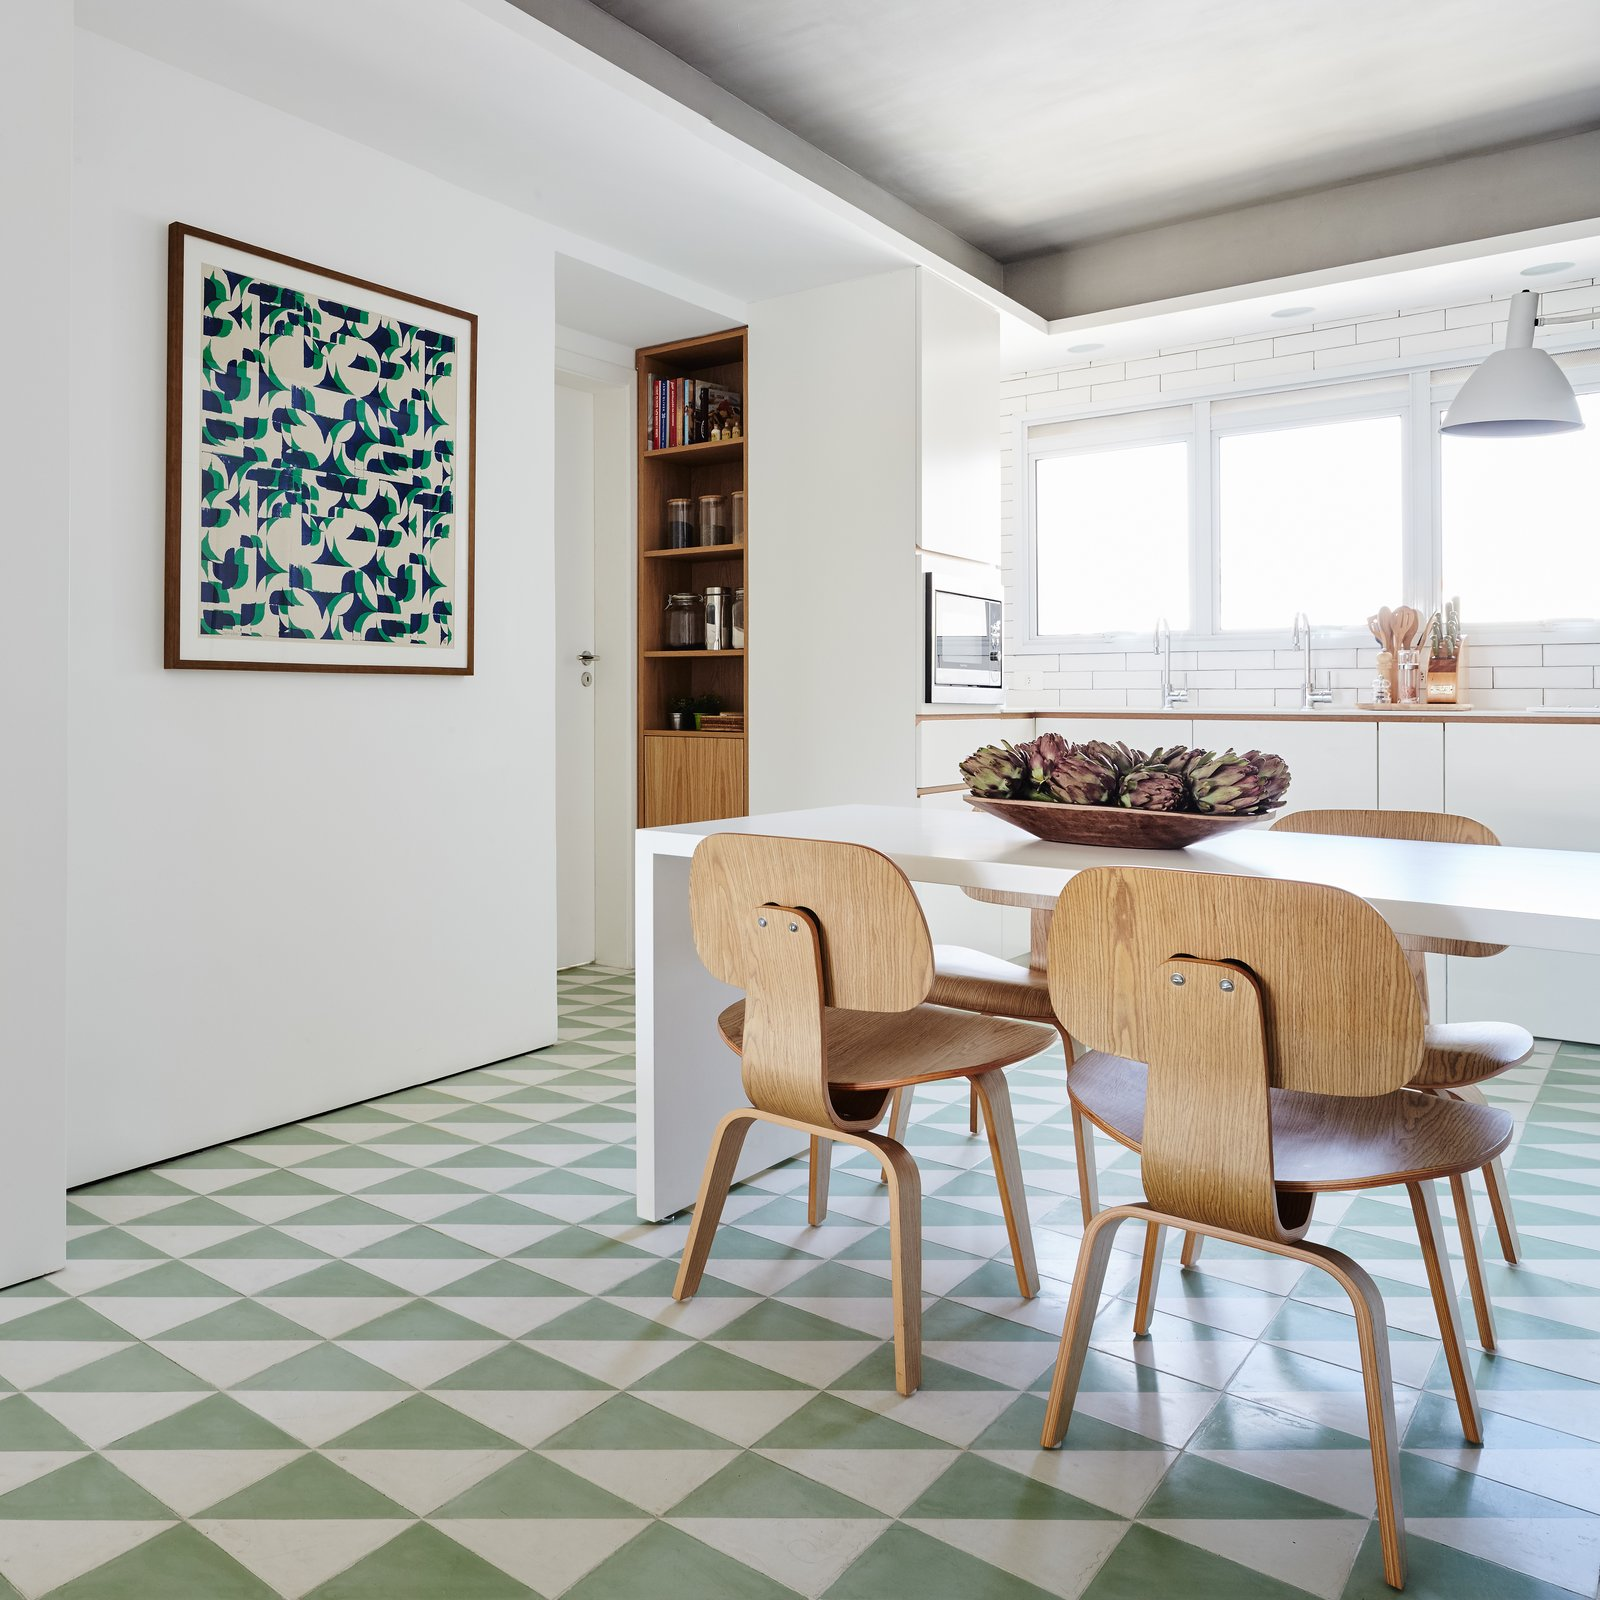 Kitchen, Wall Lighting, Microwave, White Cabinet, and Ceramic Tile Floor The kitchen is large enough for an eat-in  Photo 7 of 17 in Color Unites With Texture to Make This Brazilian Abode Appear Much Larger and Brighter